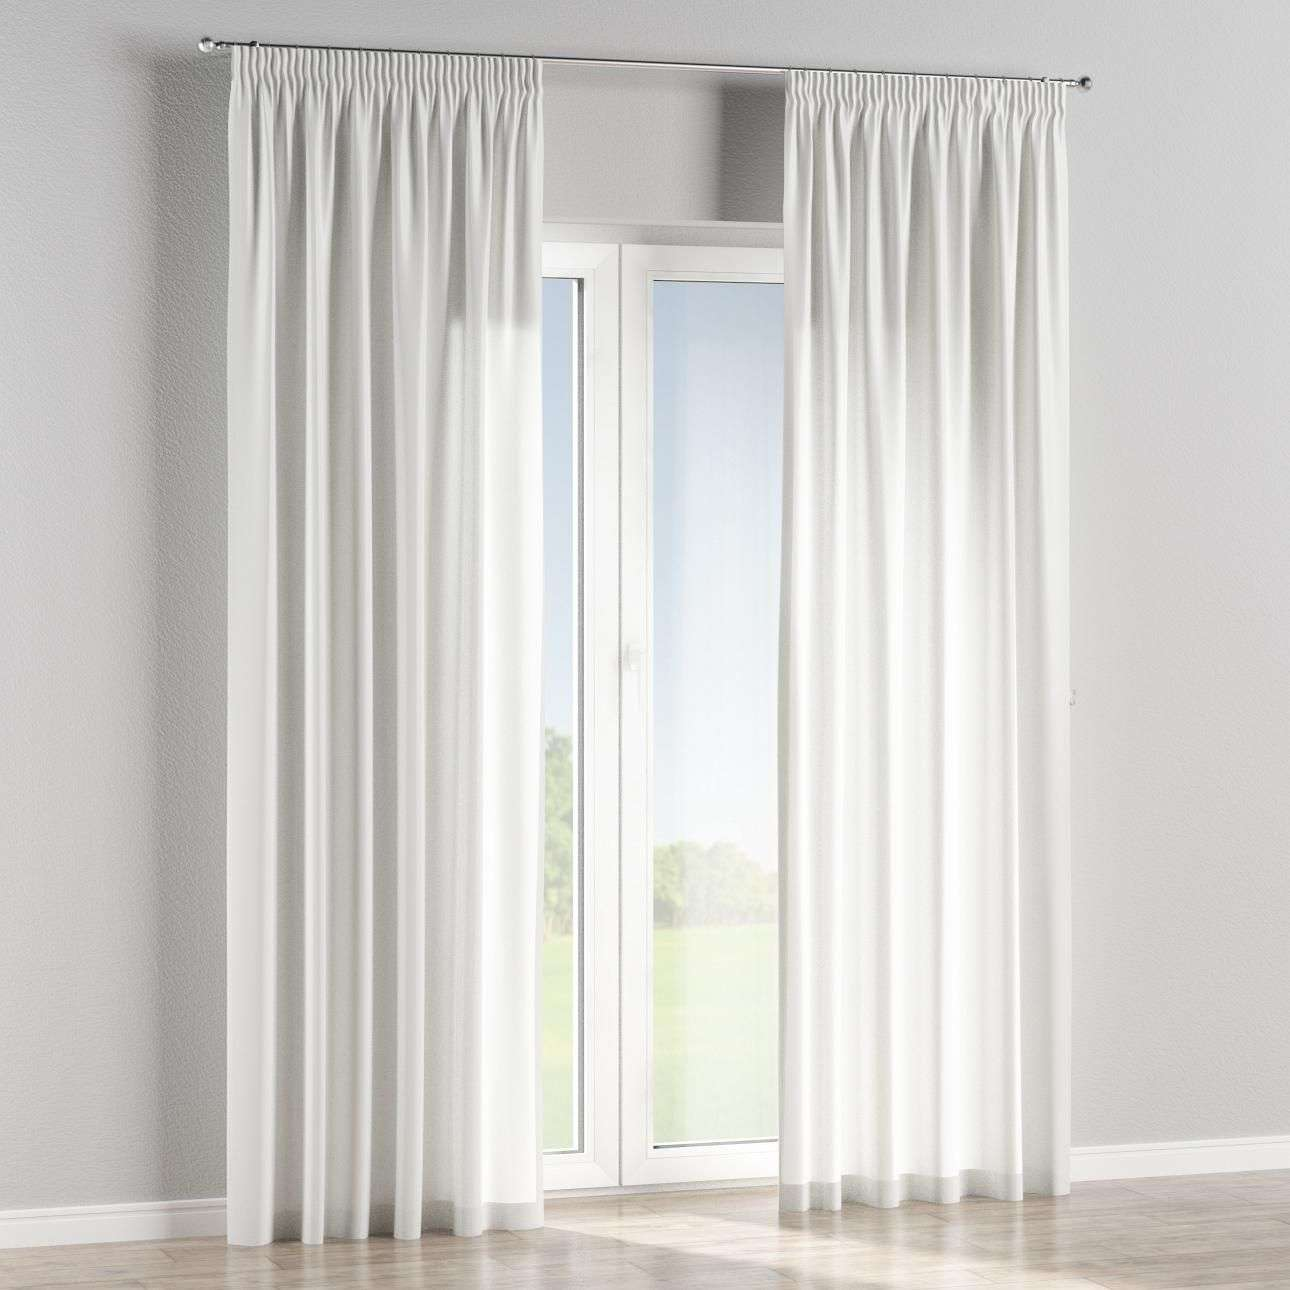 Pencil pleat curtains in collection Norge, fabric: 150-17